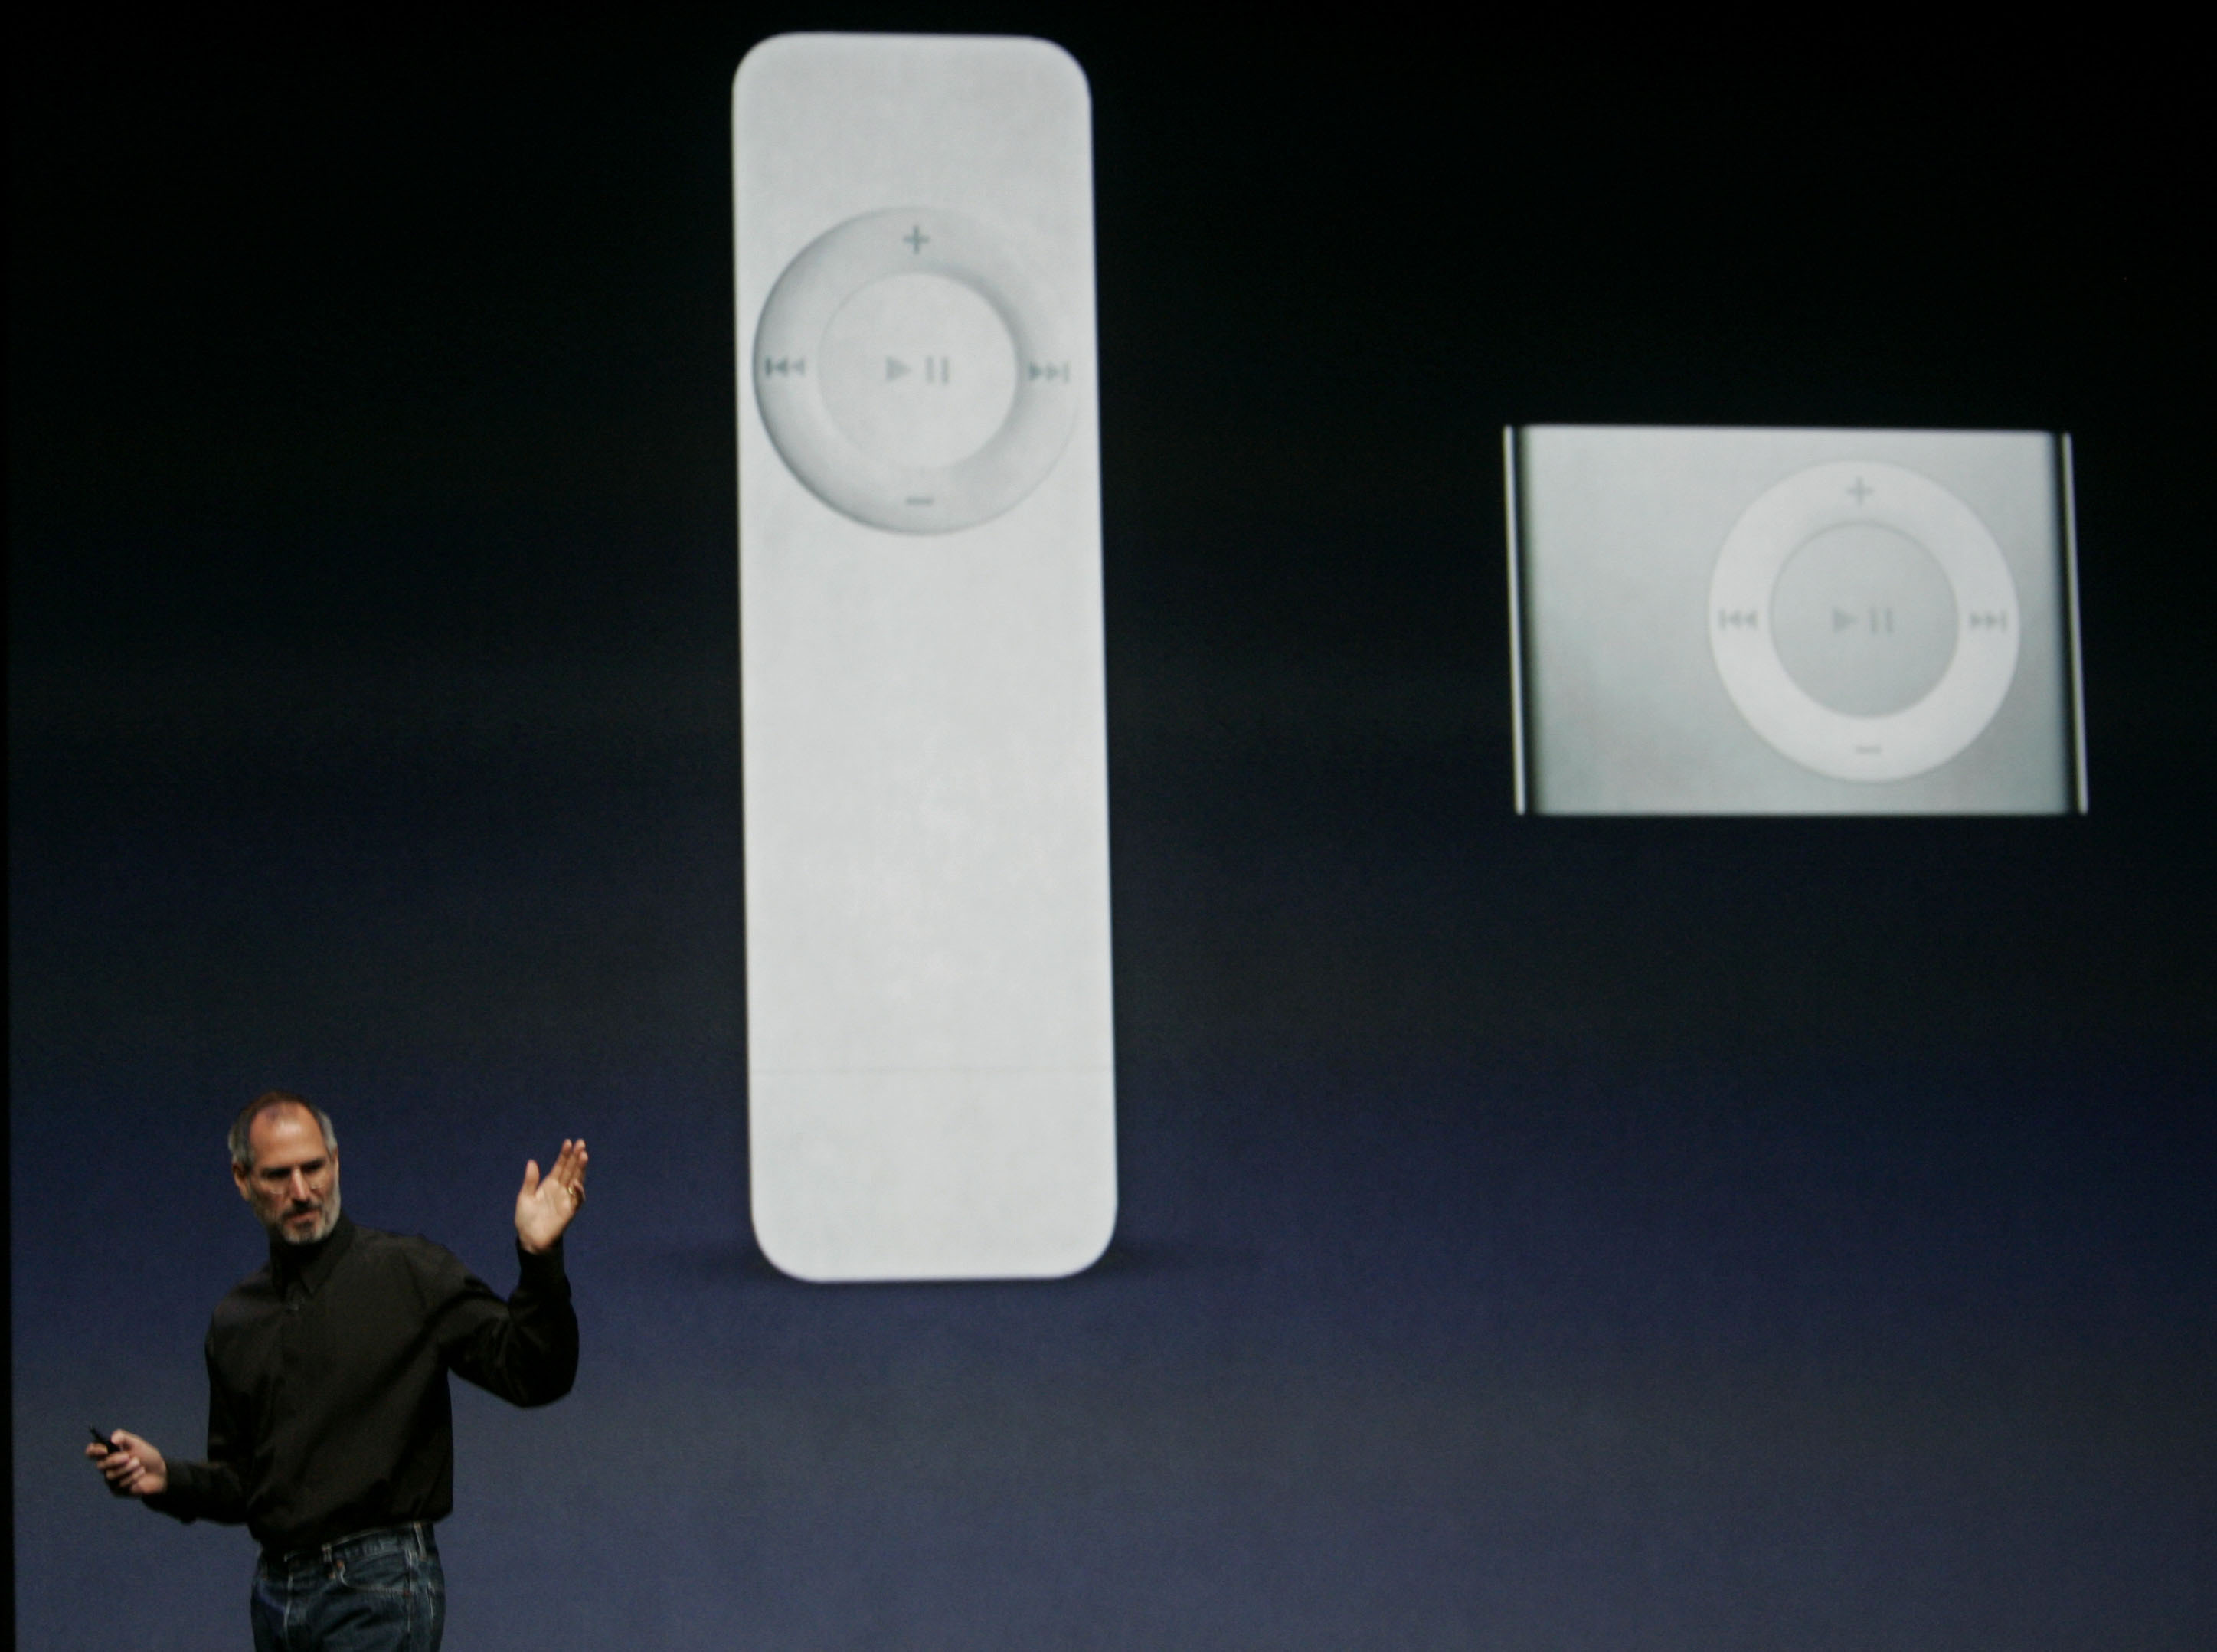 <div class='meta'><div class='origin-logo' data-origin='AP'></div><span class='caption-text' data-credit='AP Photo/Paul Sakuma'>Apple Computer CEO Steve Jobs gestures during announcement of the new iPod Shuffle, right, as the older Shuffle, left, at an Apple event in San Francisco, Tuesday, Sept. 12, 2006.</span></div>